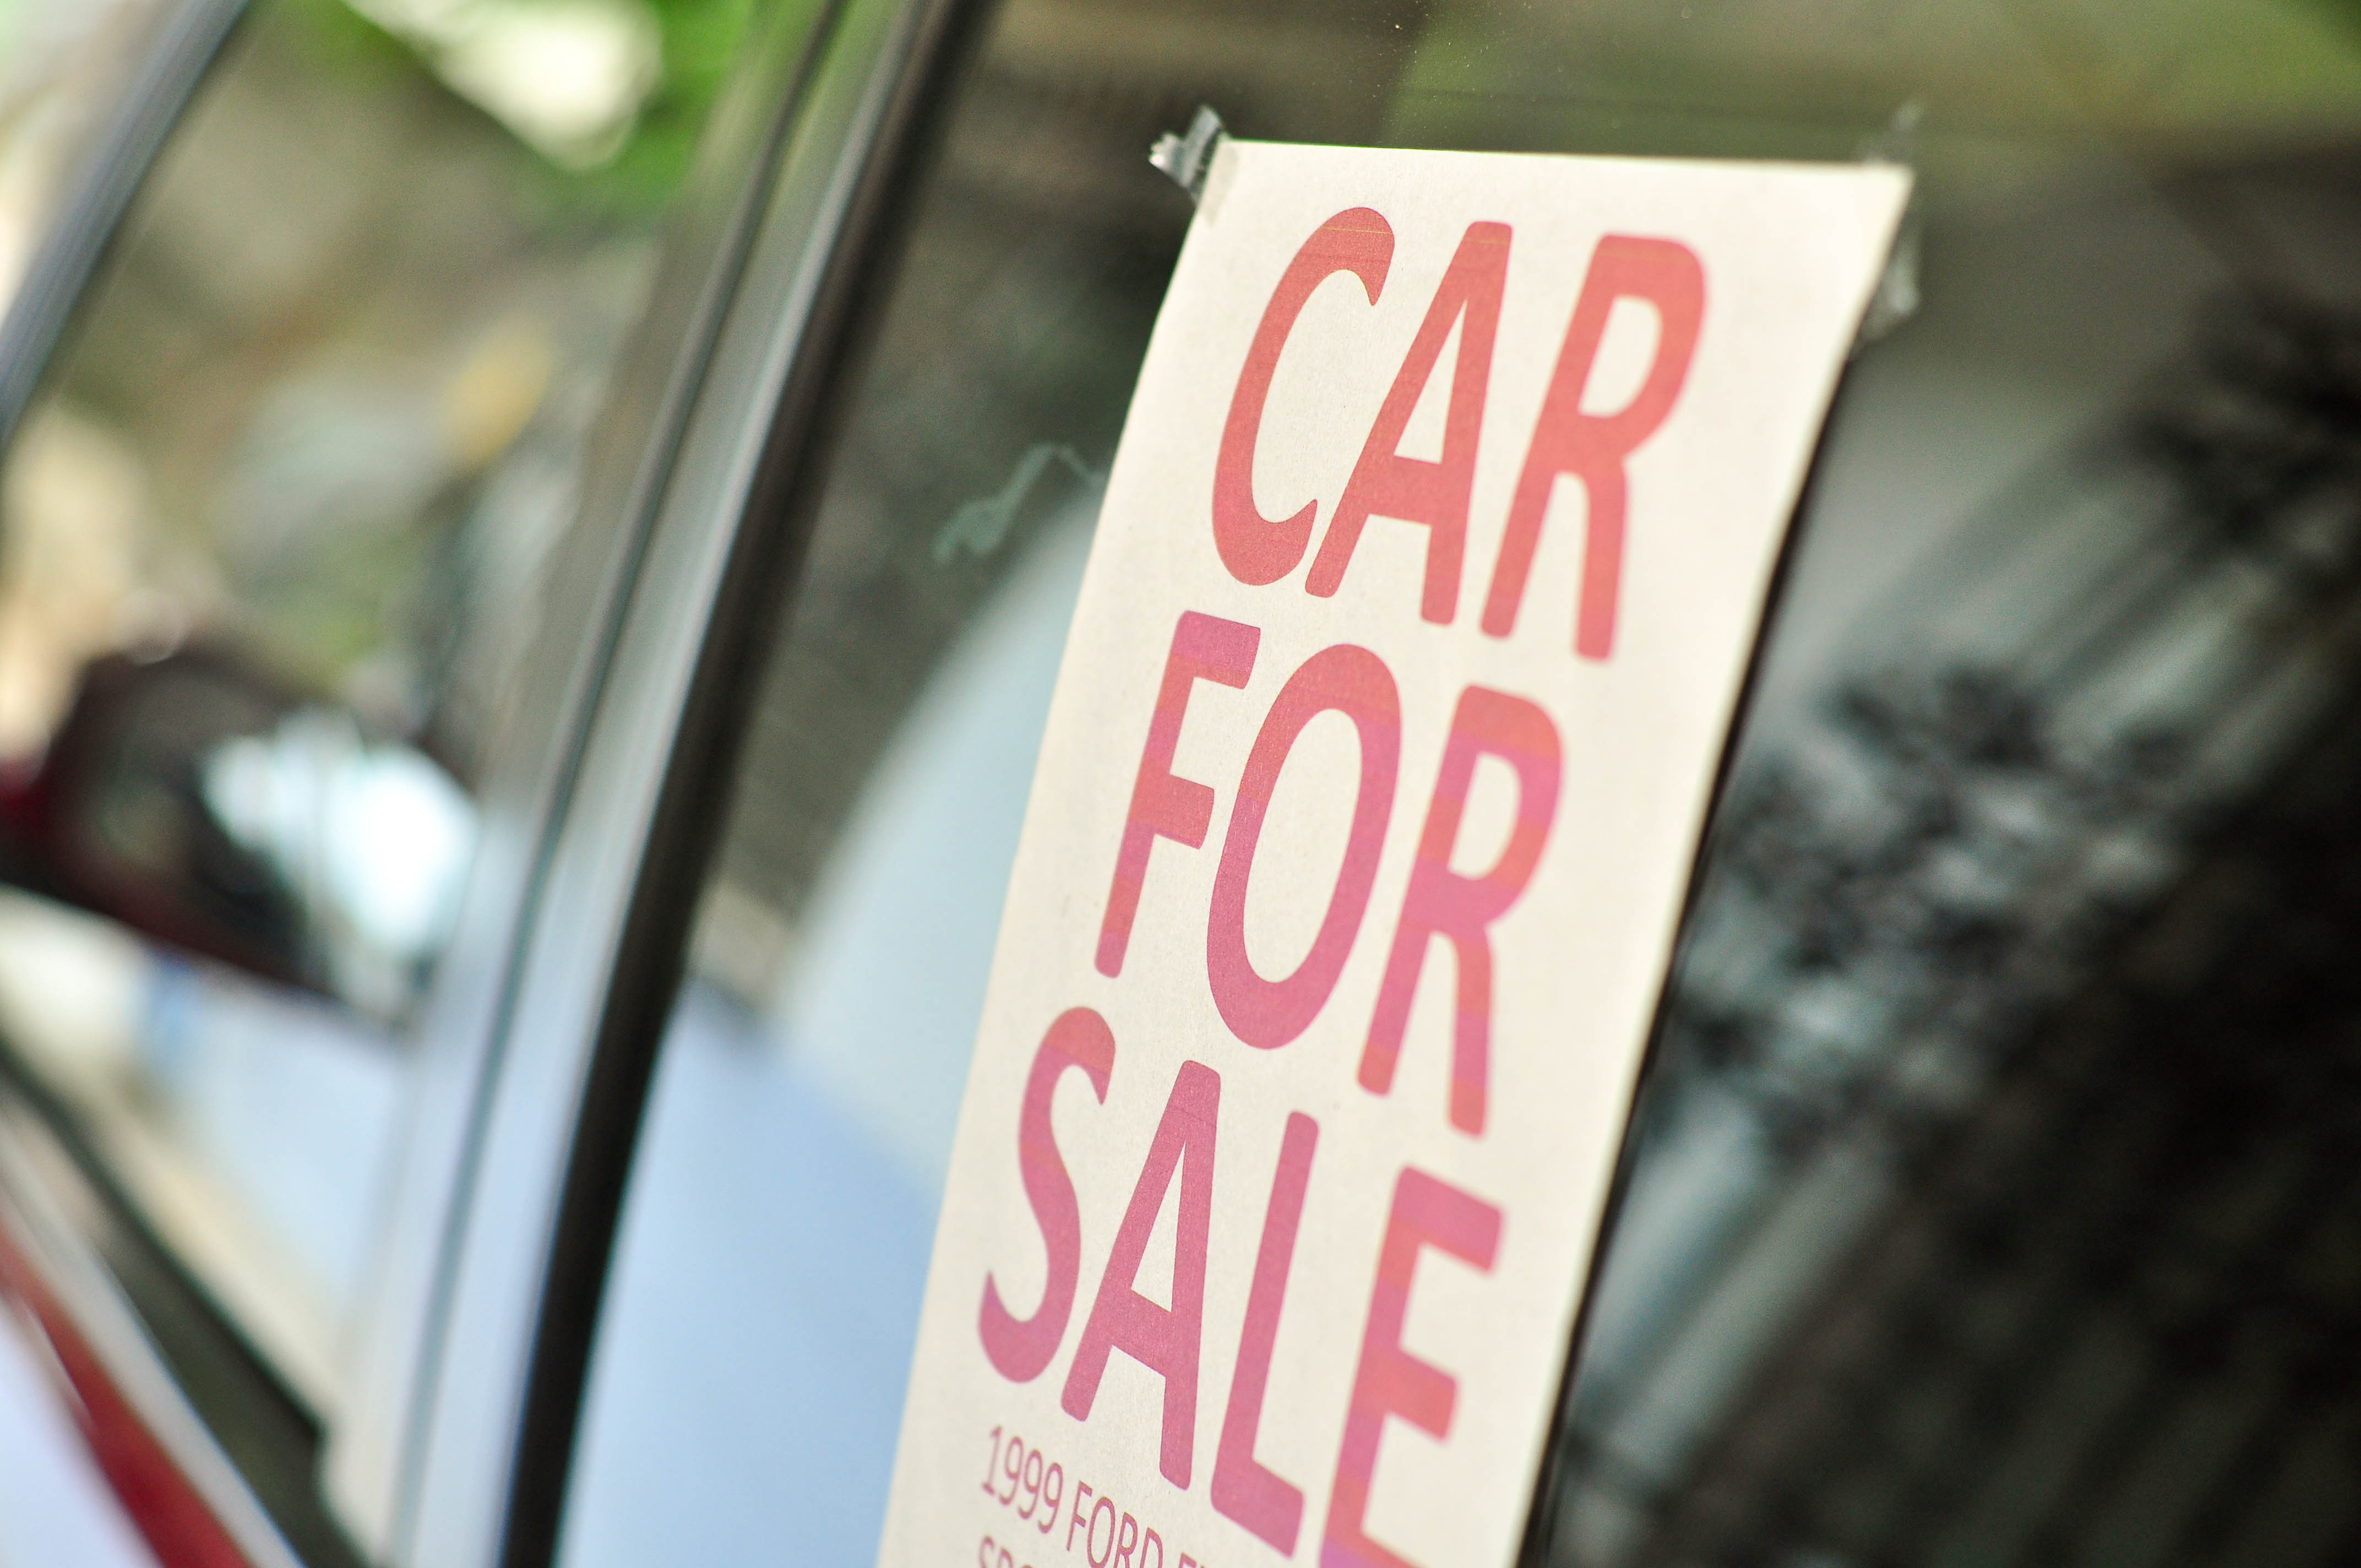 Used Car for Sale Unique Selling Your Car 9 Ways to top Dollar